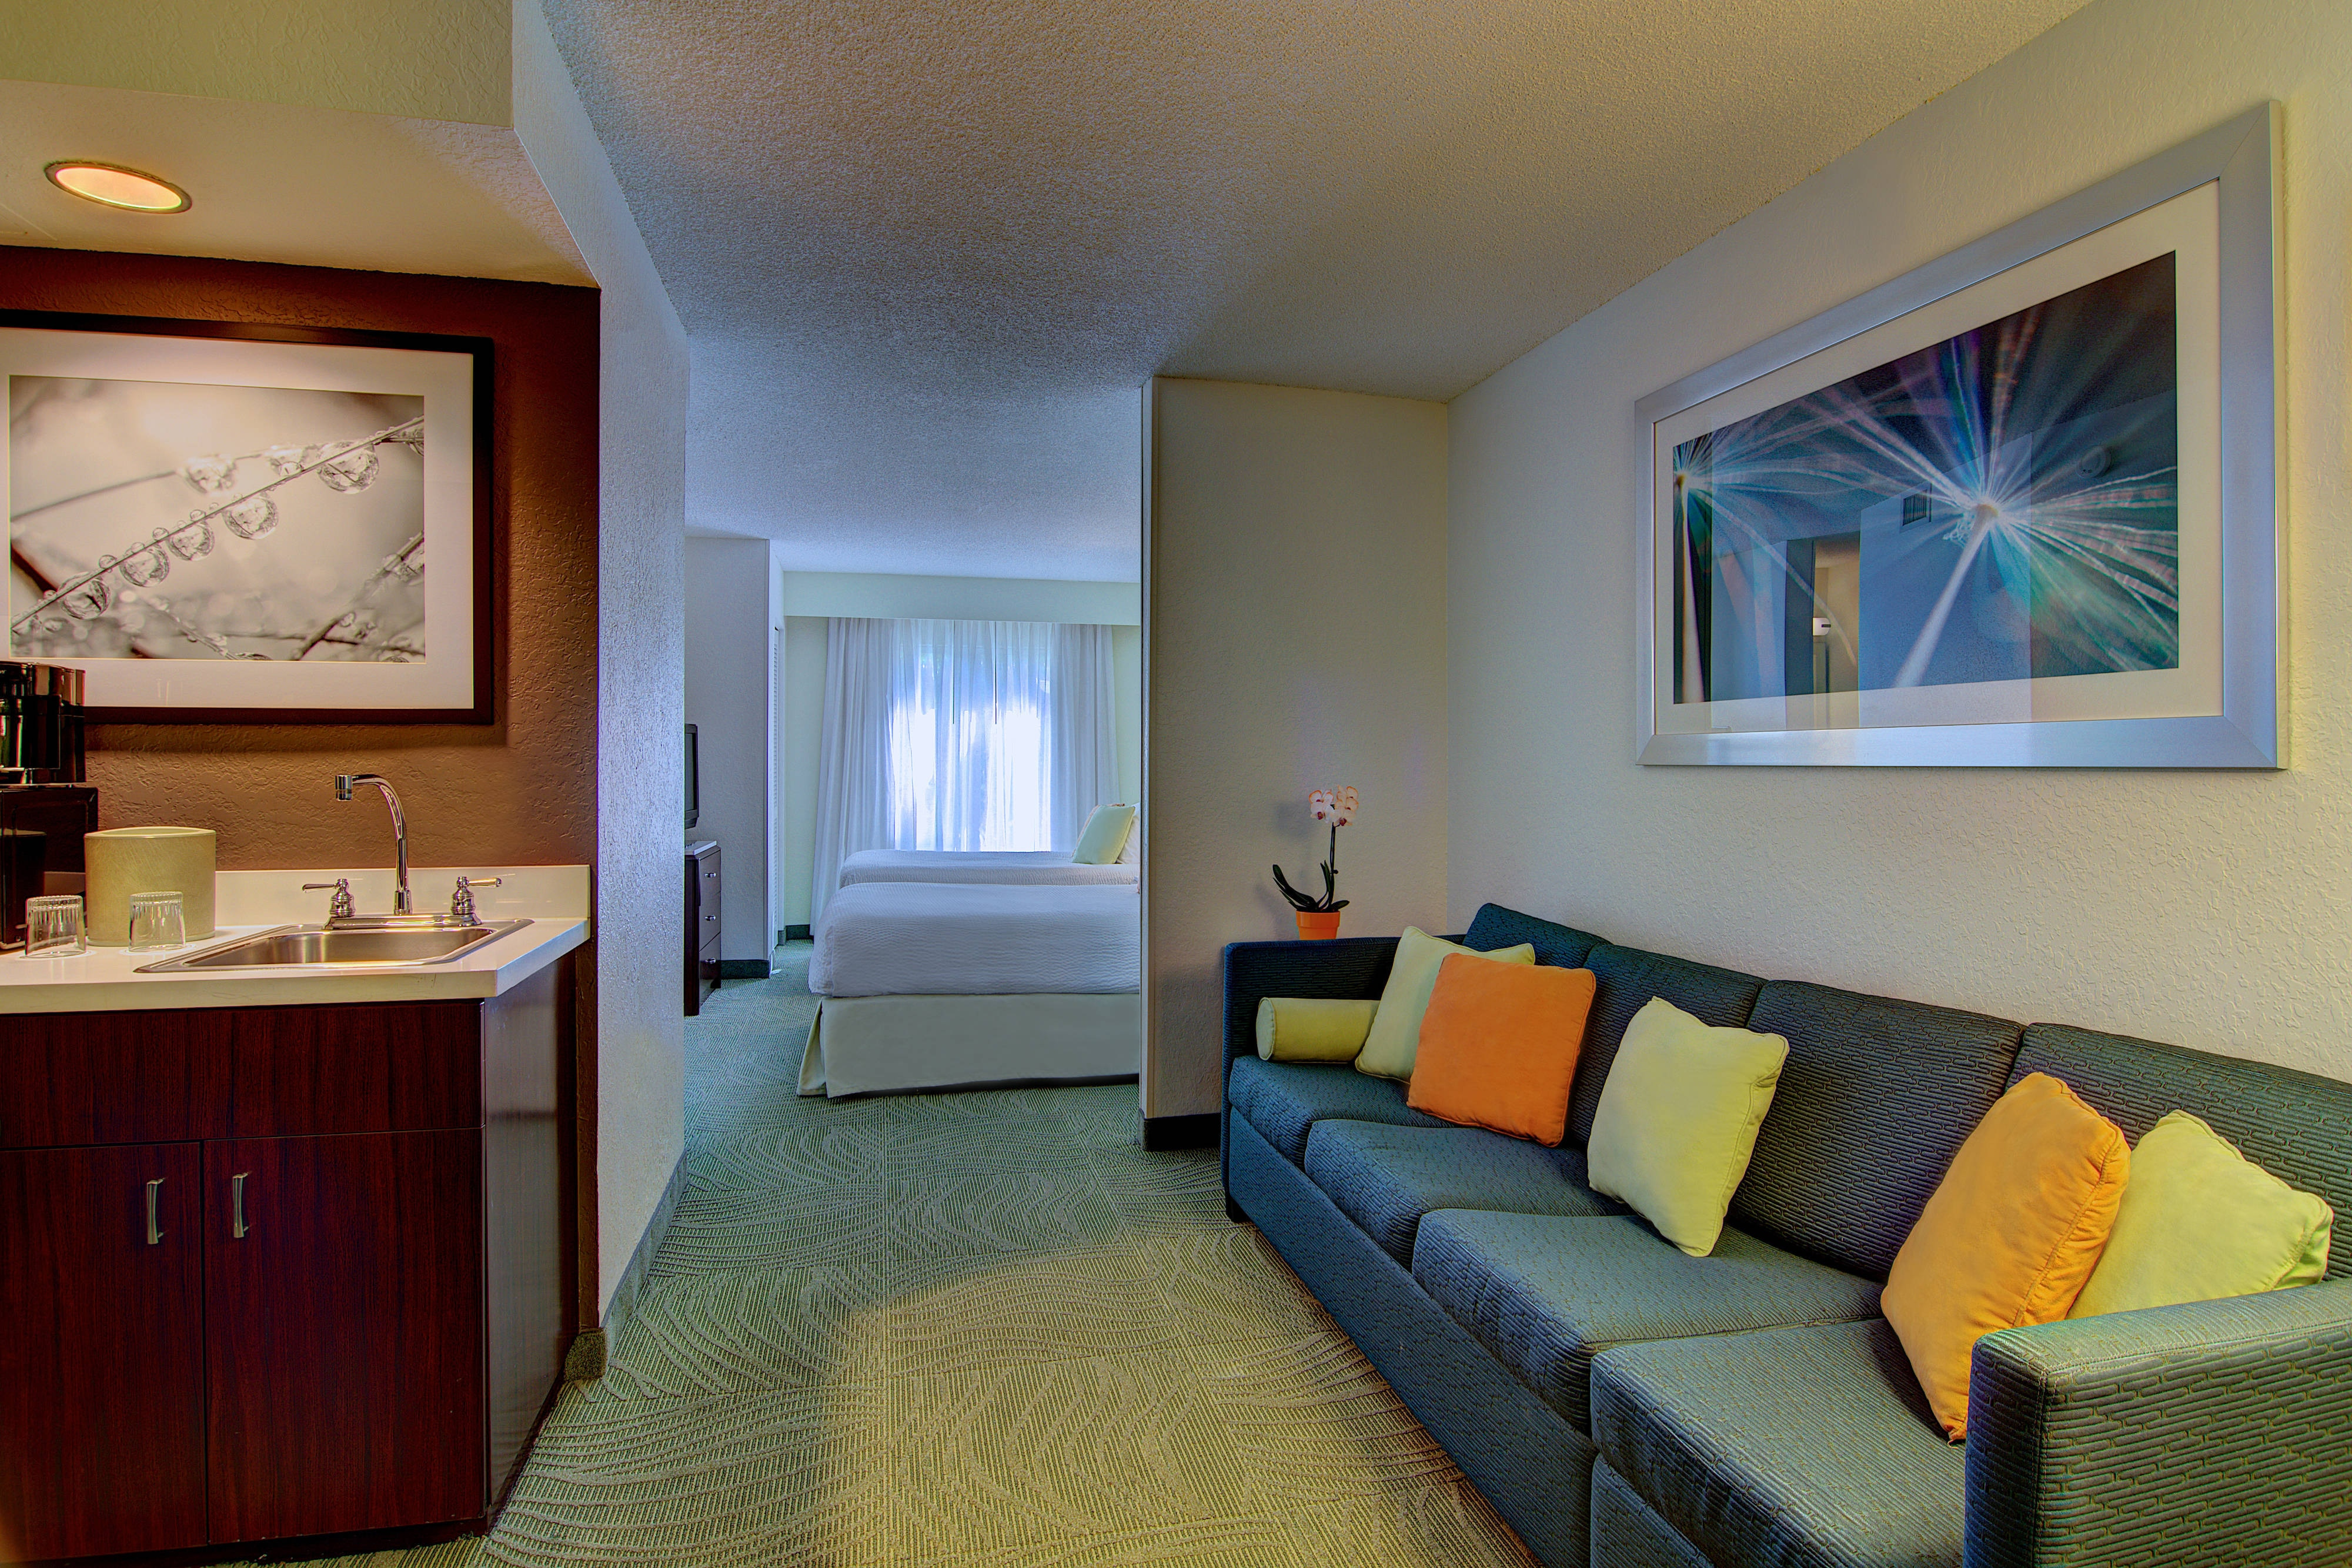 SpringHill Suites Boca Raton Two Double Bed Suite